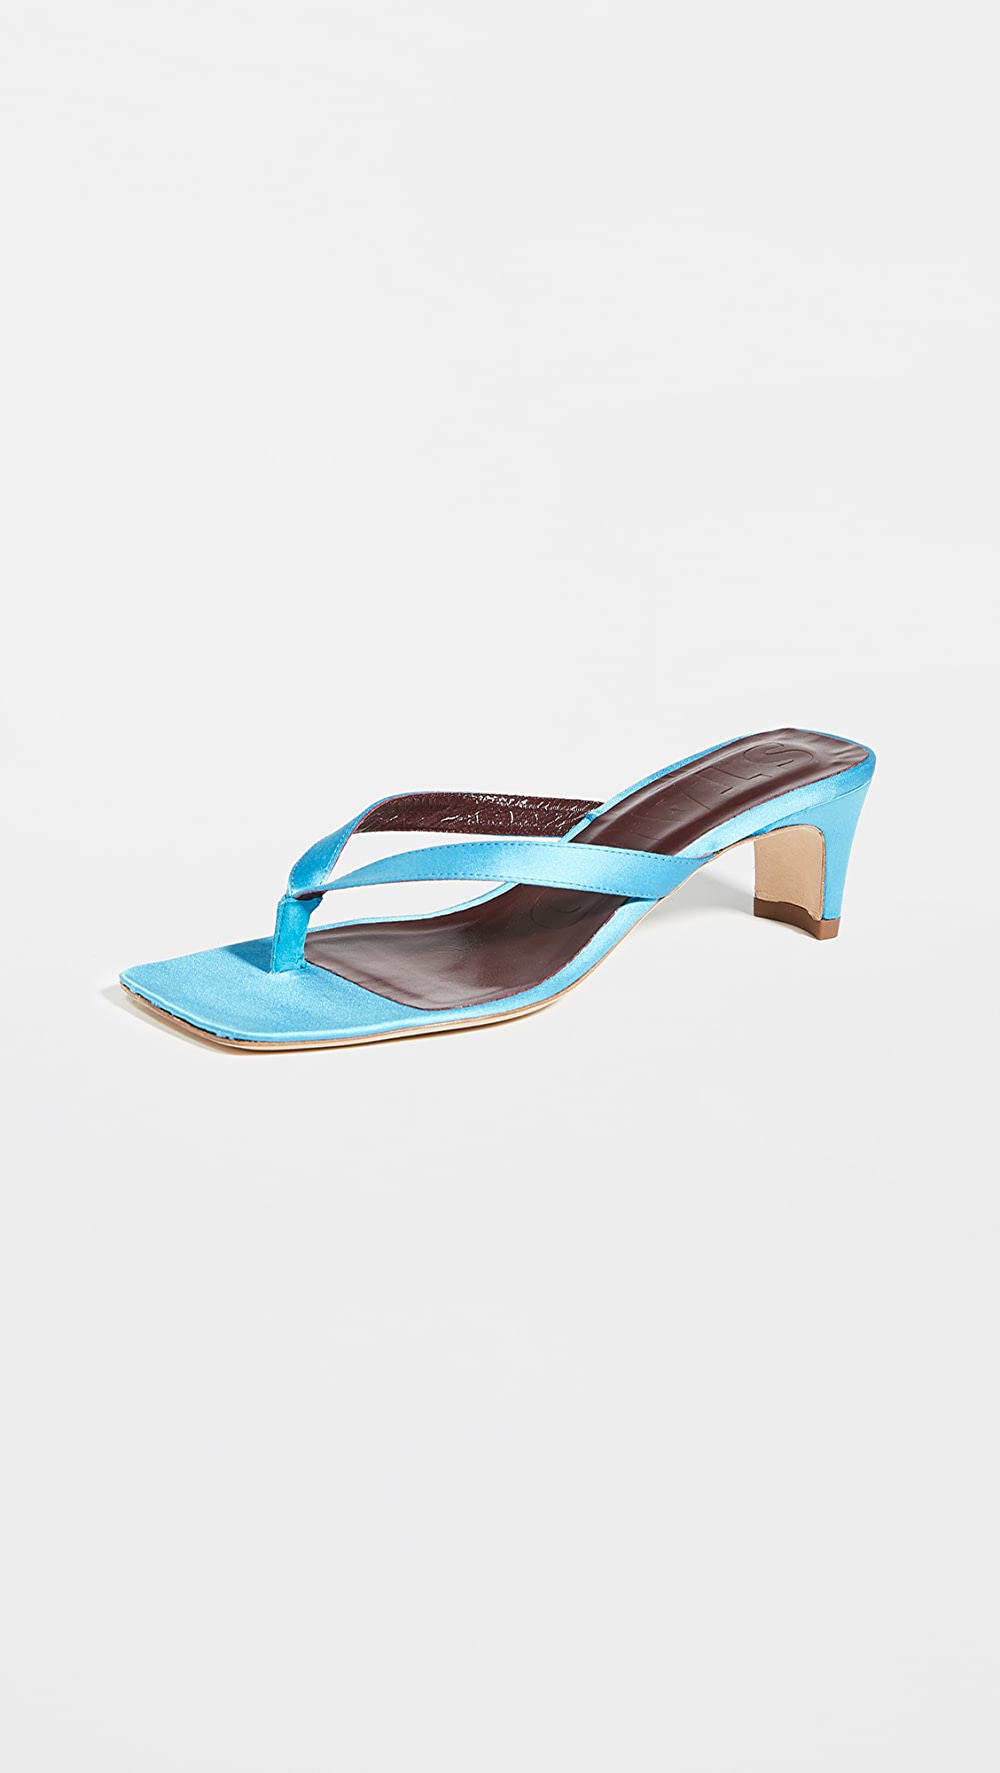 2019 Fashion Staud - Audrey Sandals Highly Polished